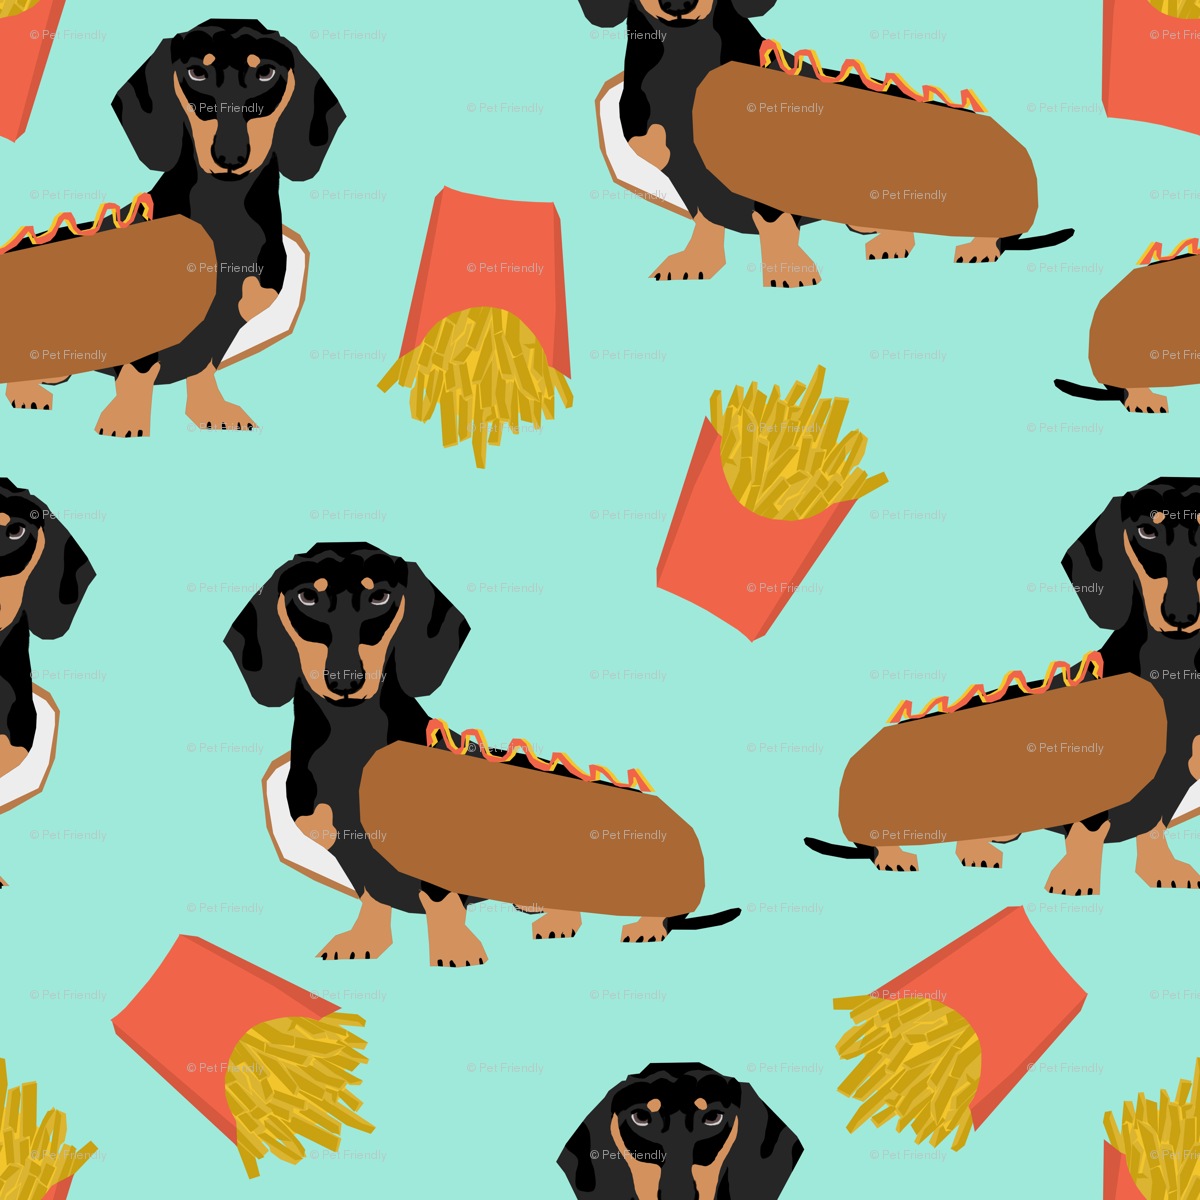 dachshund hot dog and fries food funny dog costume cute dog wiener dog fabric - petfriendly - Spoonflower  sc 1 st  Spoonflower & dachshund hot dog and fries food funny dog costume cute dog wiener ...